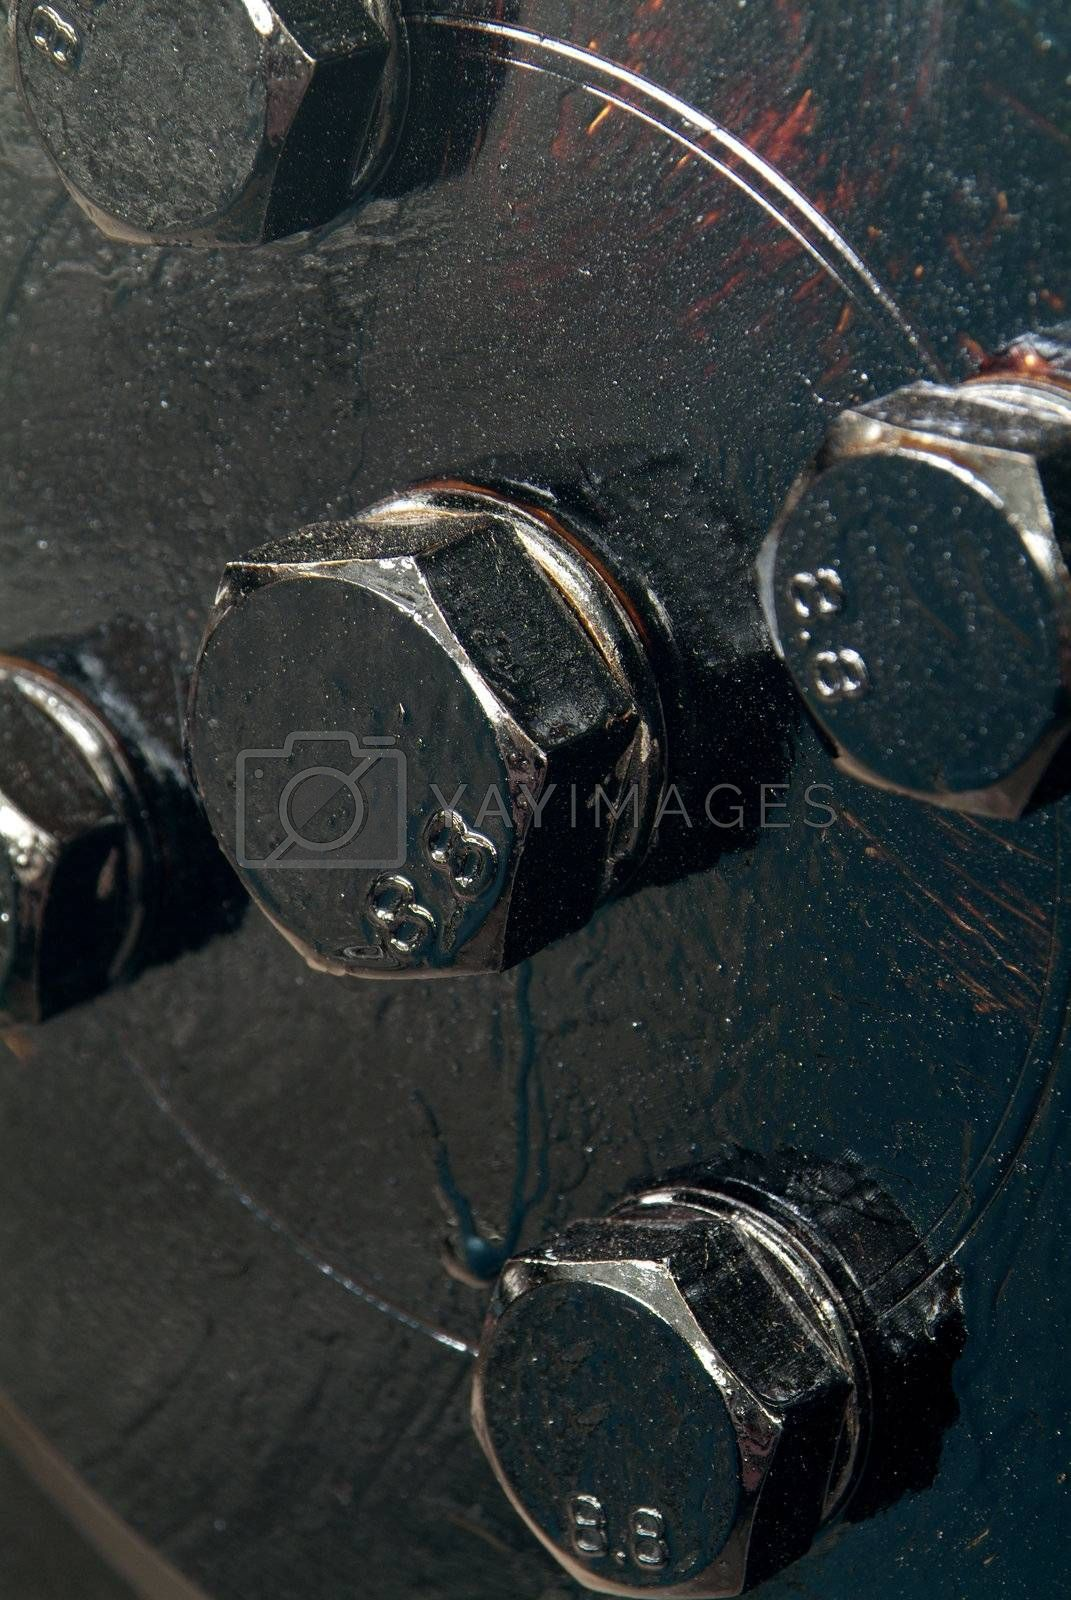 Royalty free image of Black, painted bolts by epixx